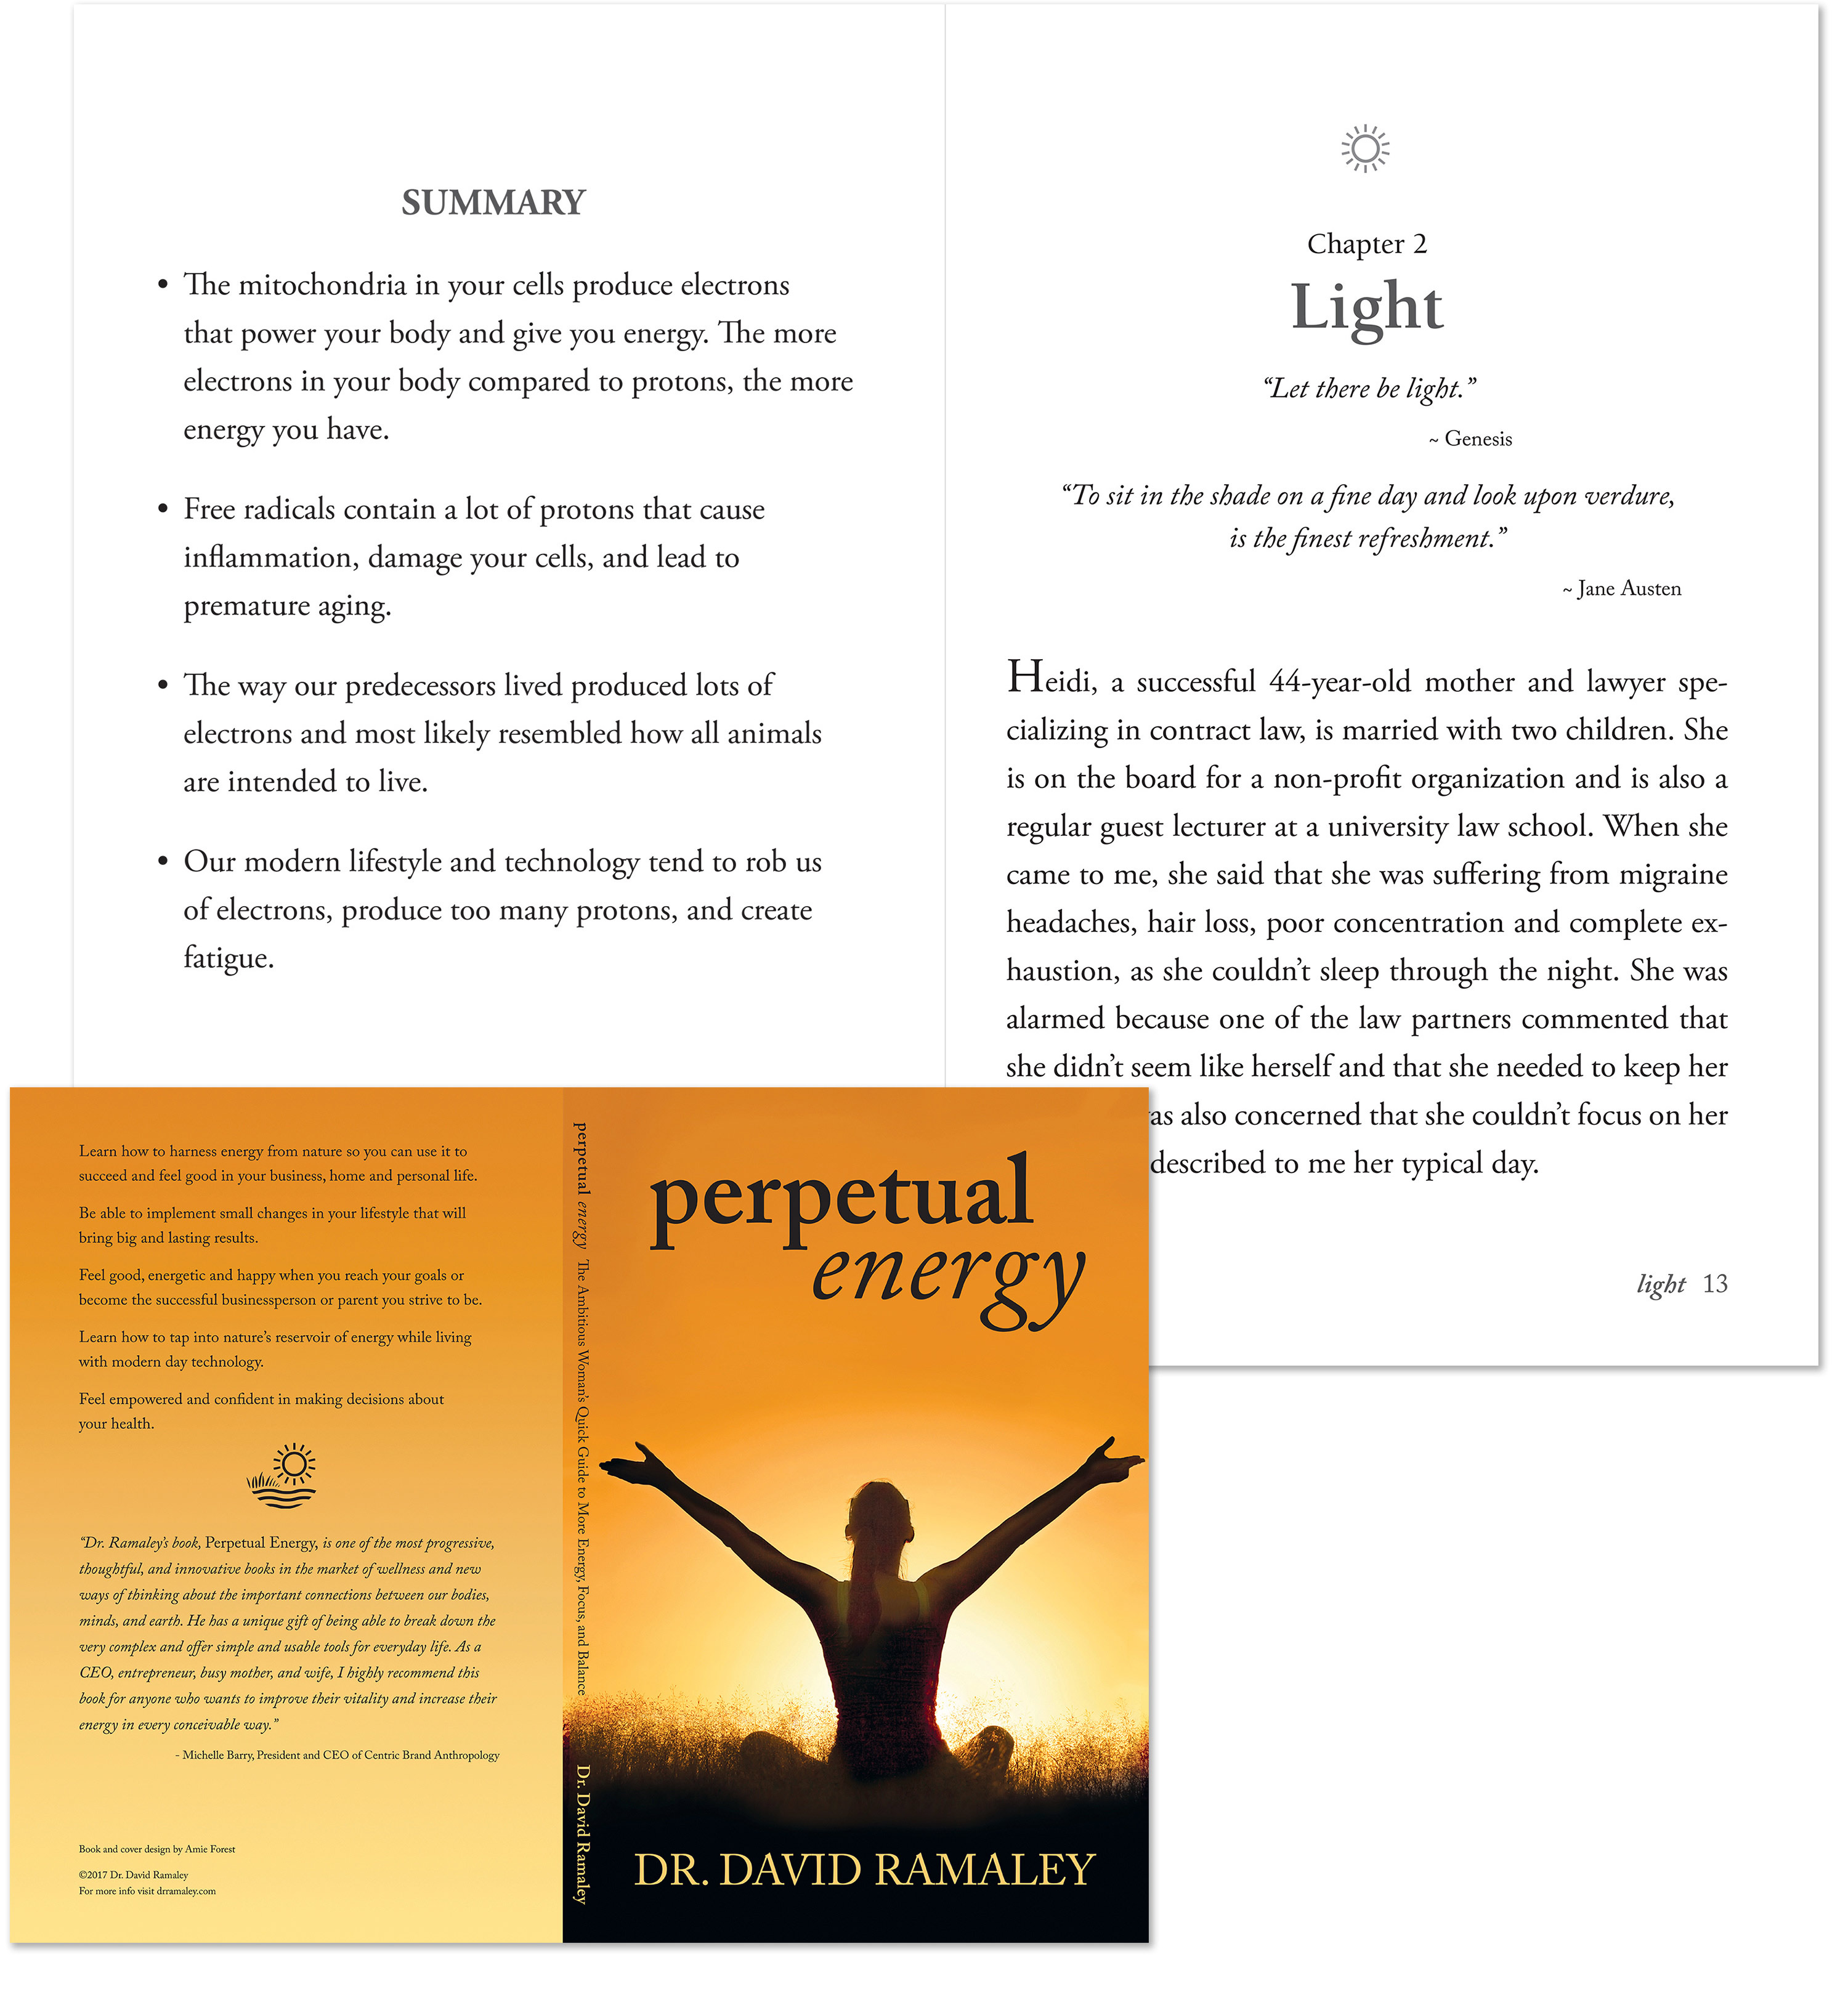 Dr. Ramaley's book cover and sample inside page